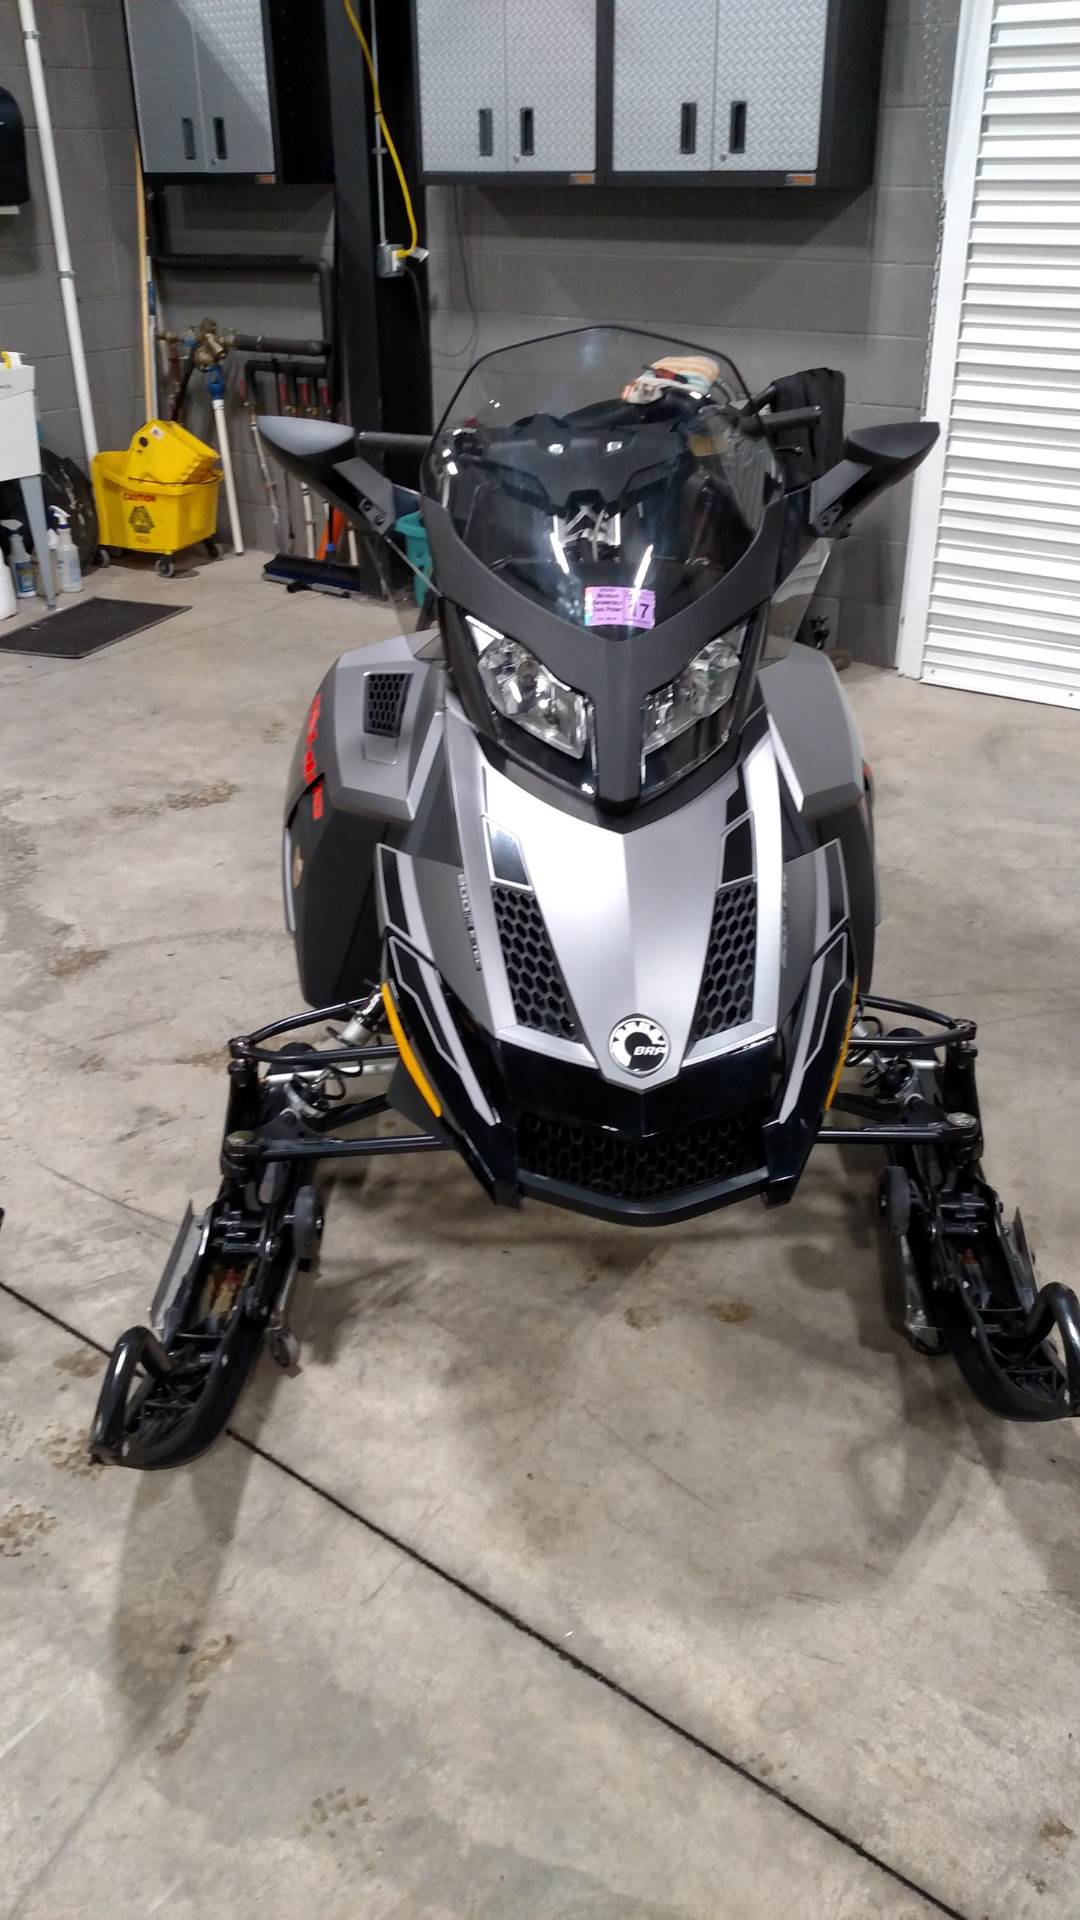 2015 Ski-Doo GSX® SE E-TEC® 800R in Huron, Ohio - Photo 1